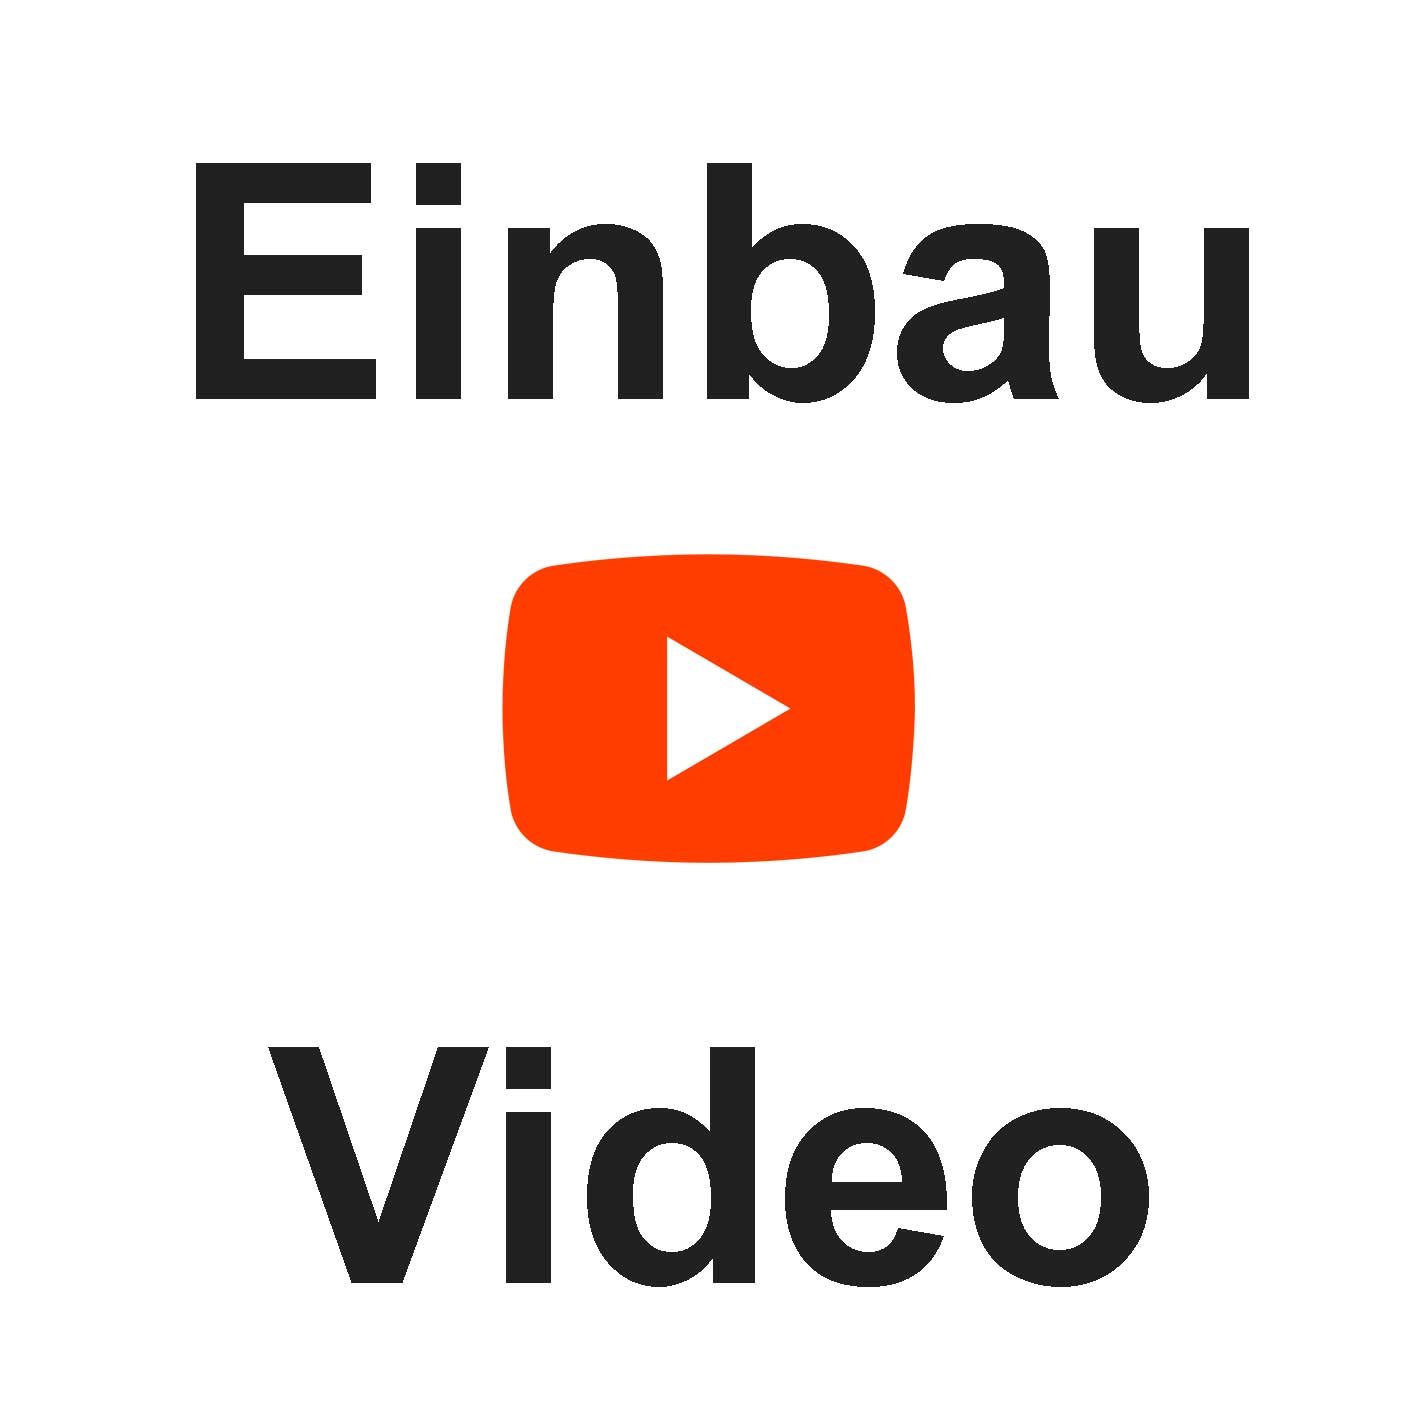 Vorschau: Youtube-Video 2